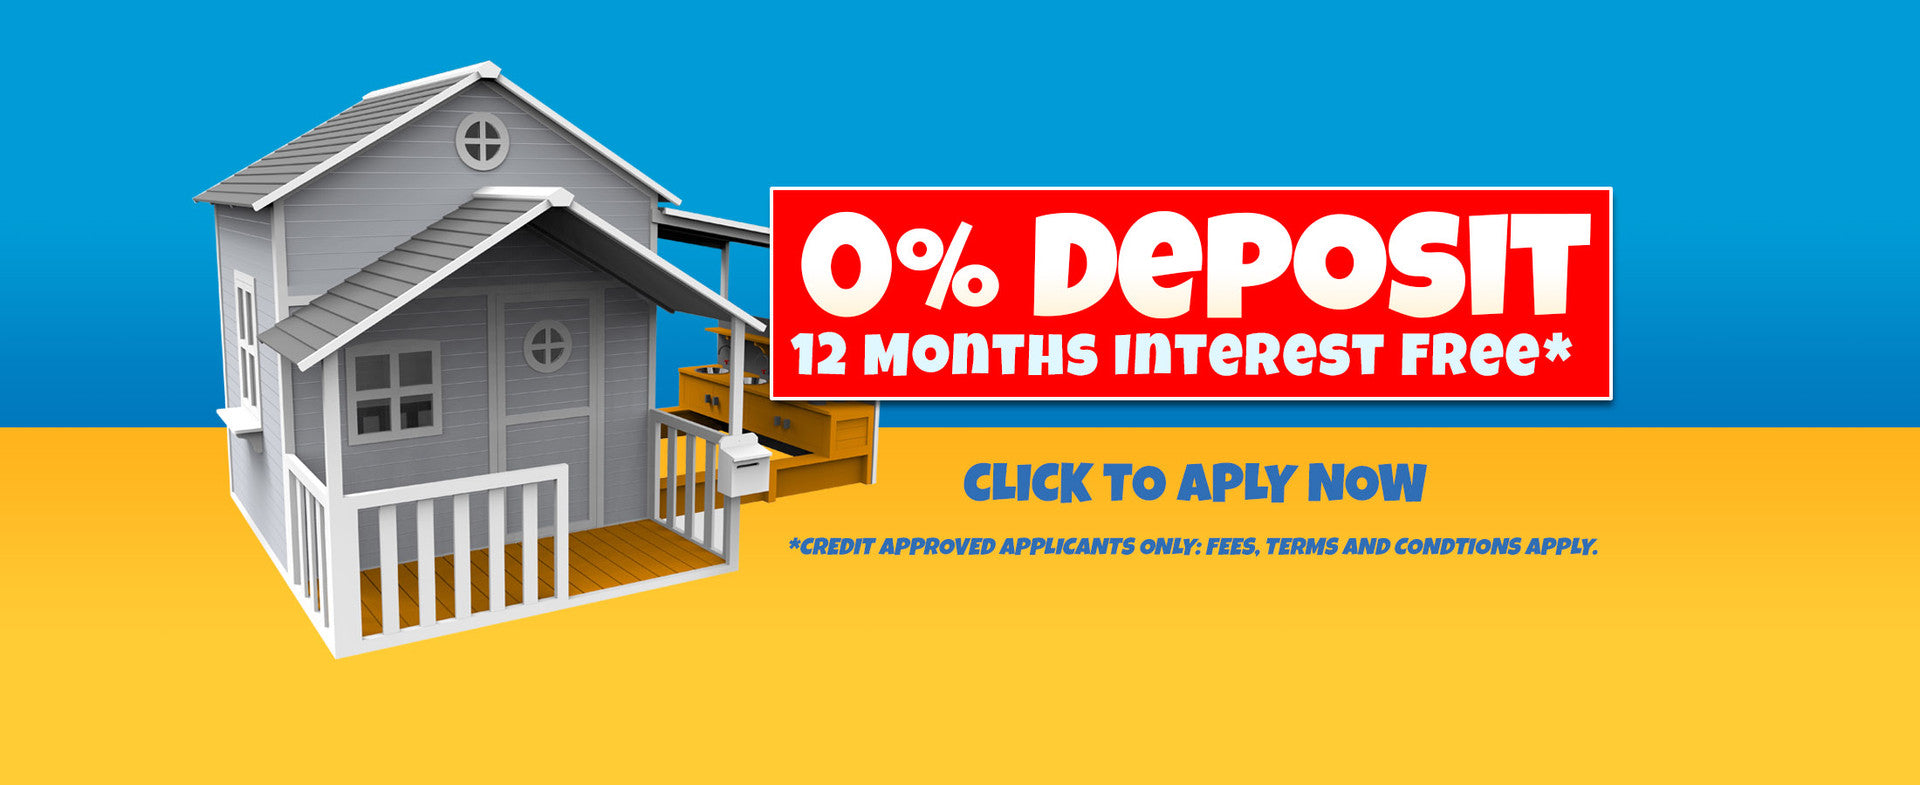 0% depoisit intereste free finance for cubb houses